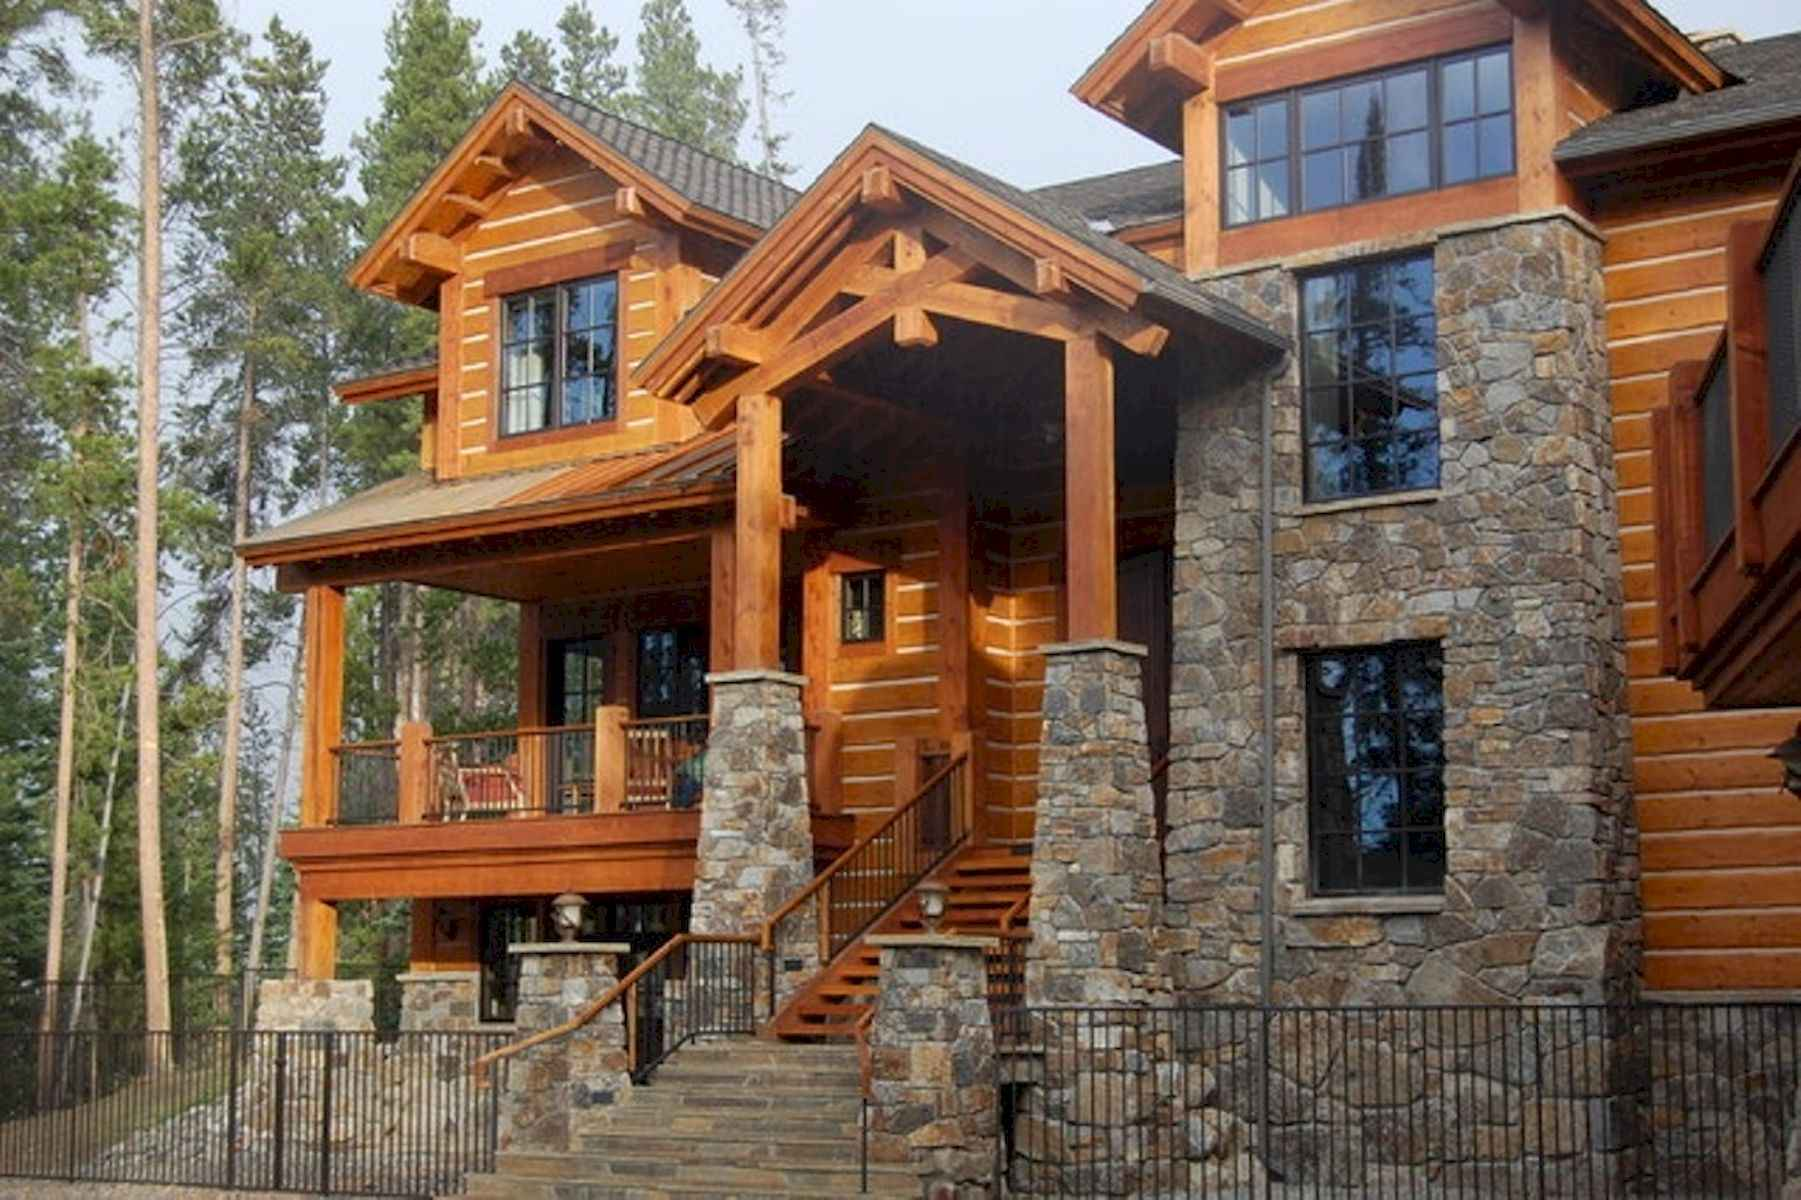 60 Rustic Log Cabin Homes Plans Design Ideas And Remodel (48)